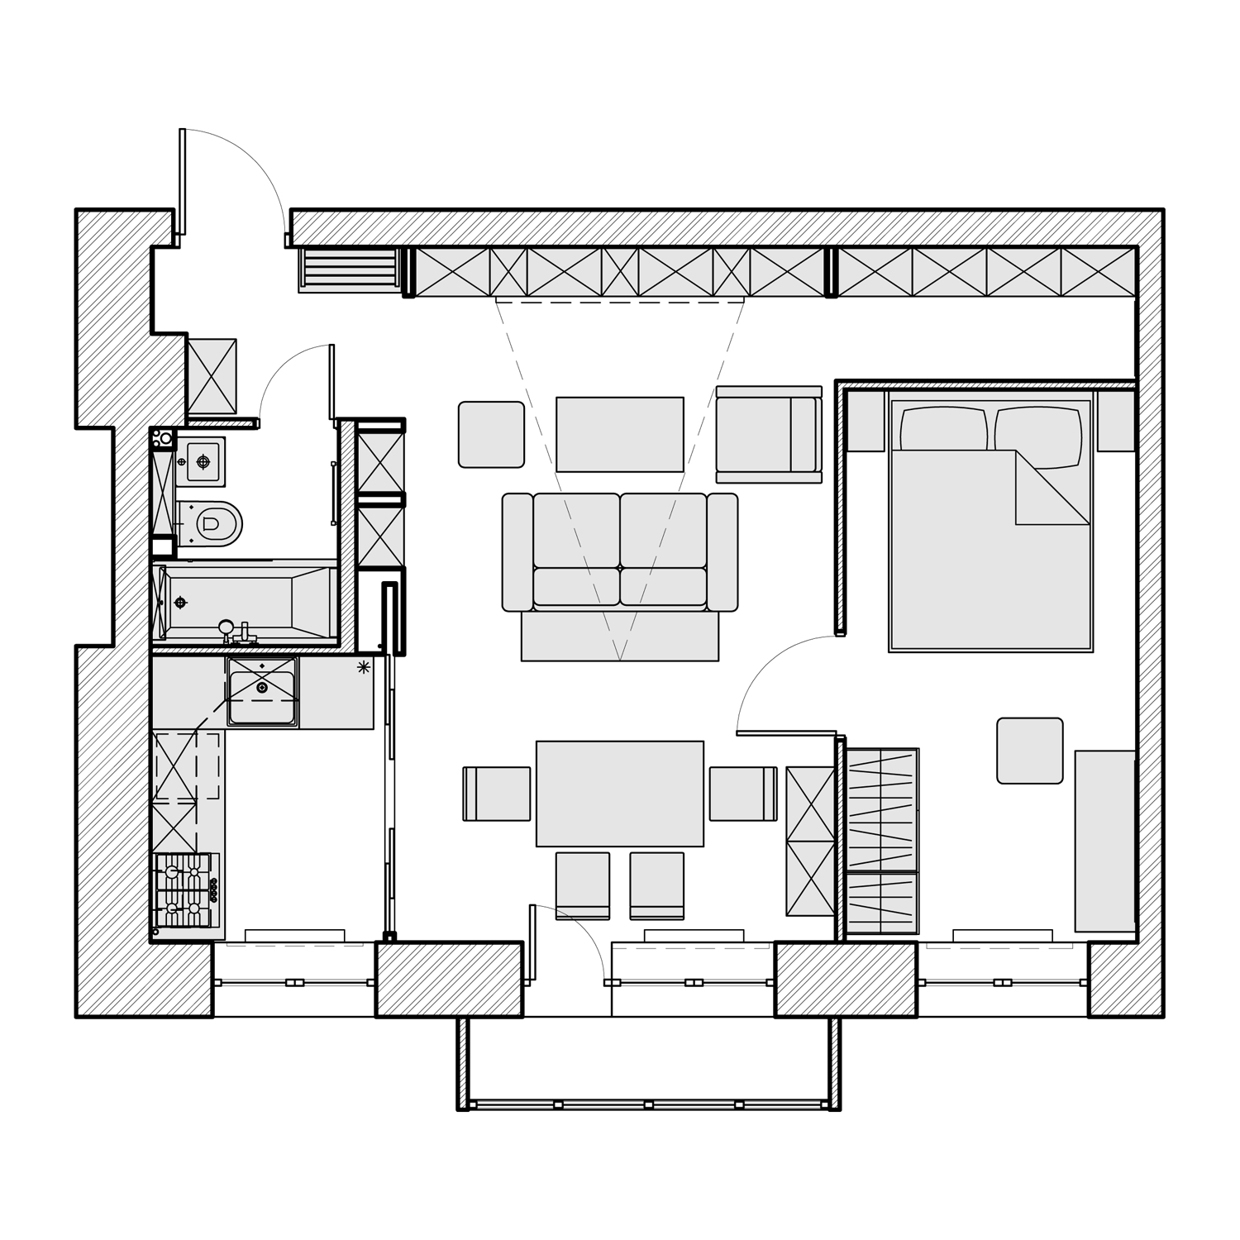 House plans 500 to 600 square feet How big is 500 square feet